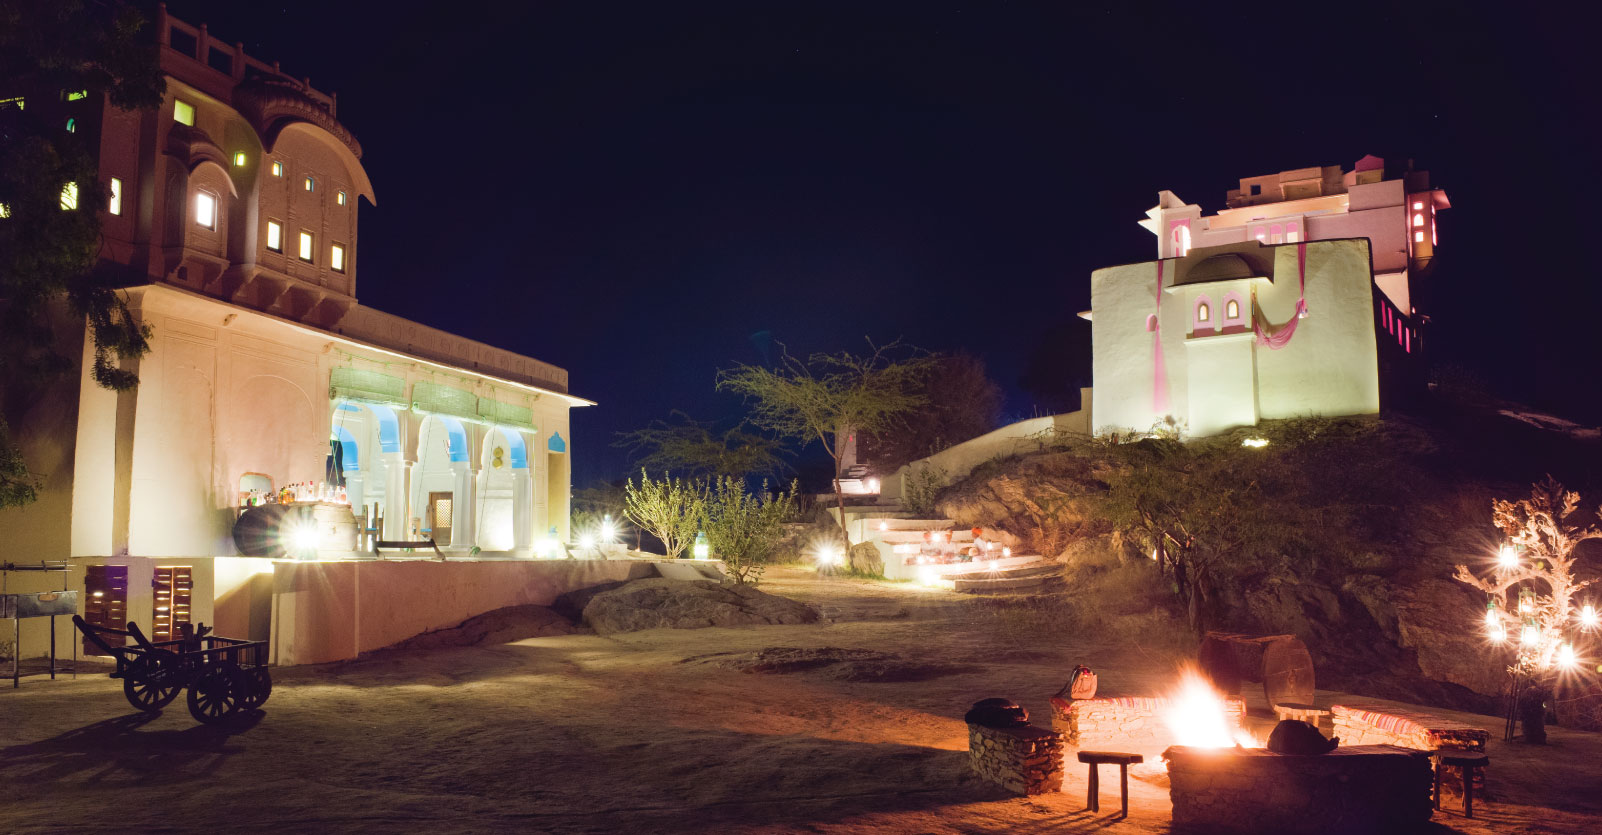 lakshman sagar internal 4